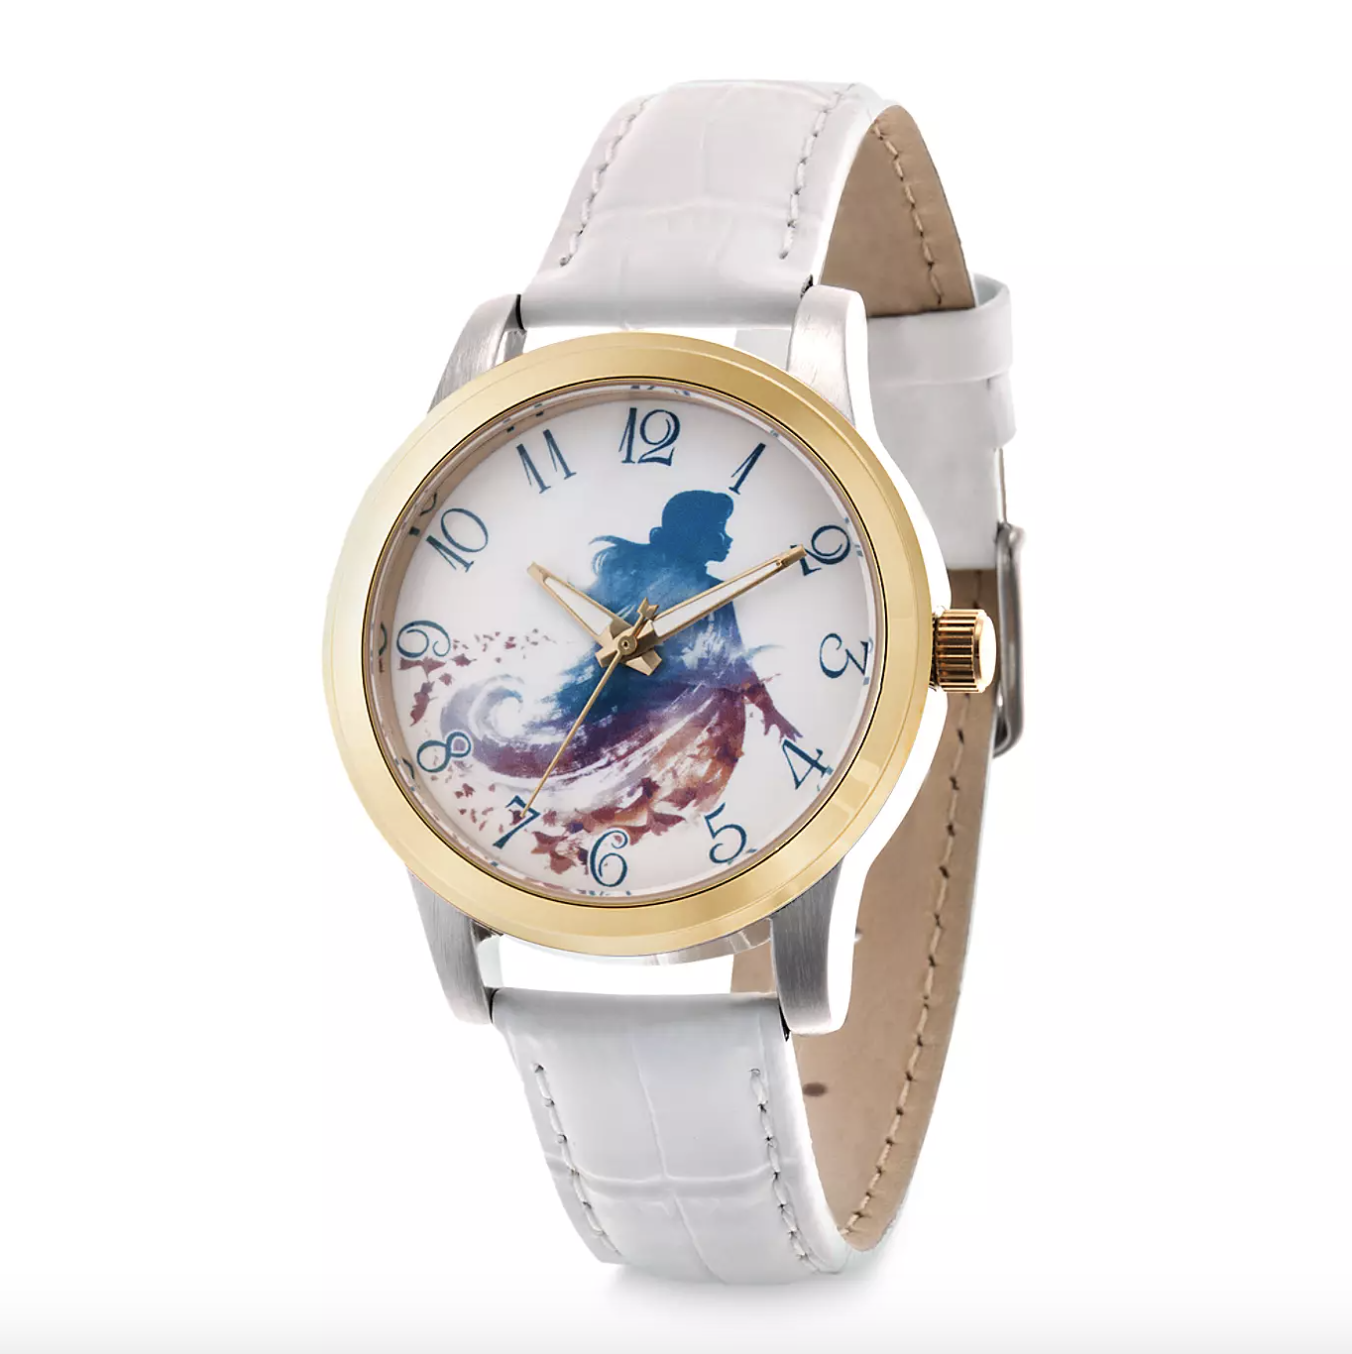 The watch, which has a silver and gold alloy case, a blue Anna illustration on the dial, white leather band, quartz movement, and mineral crystal minute and hour hands